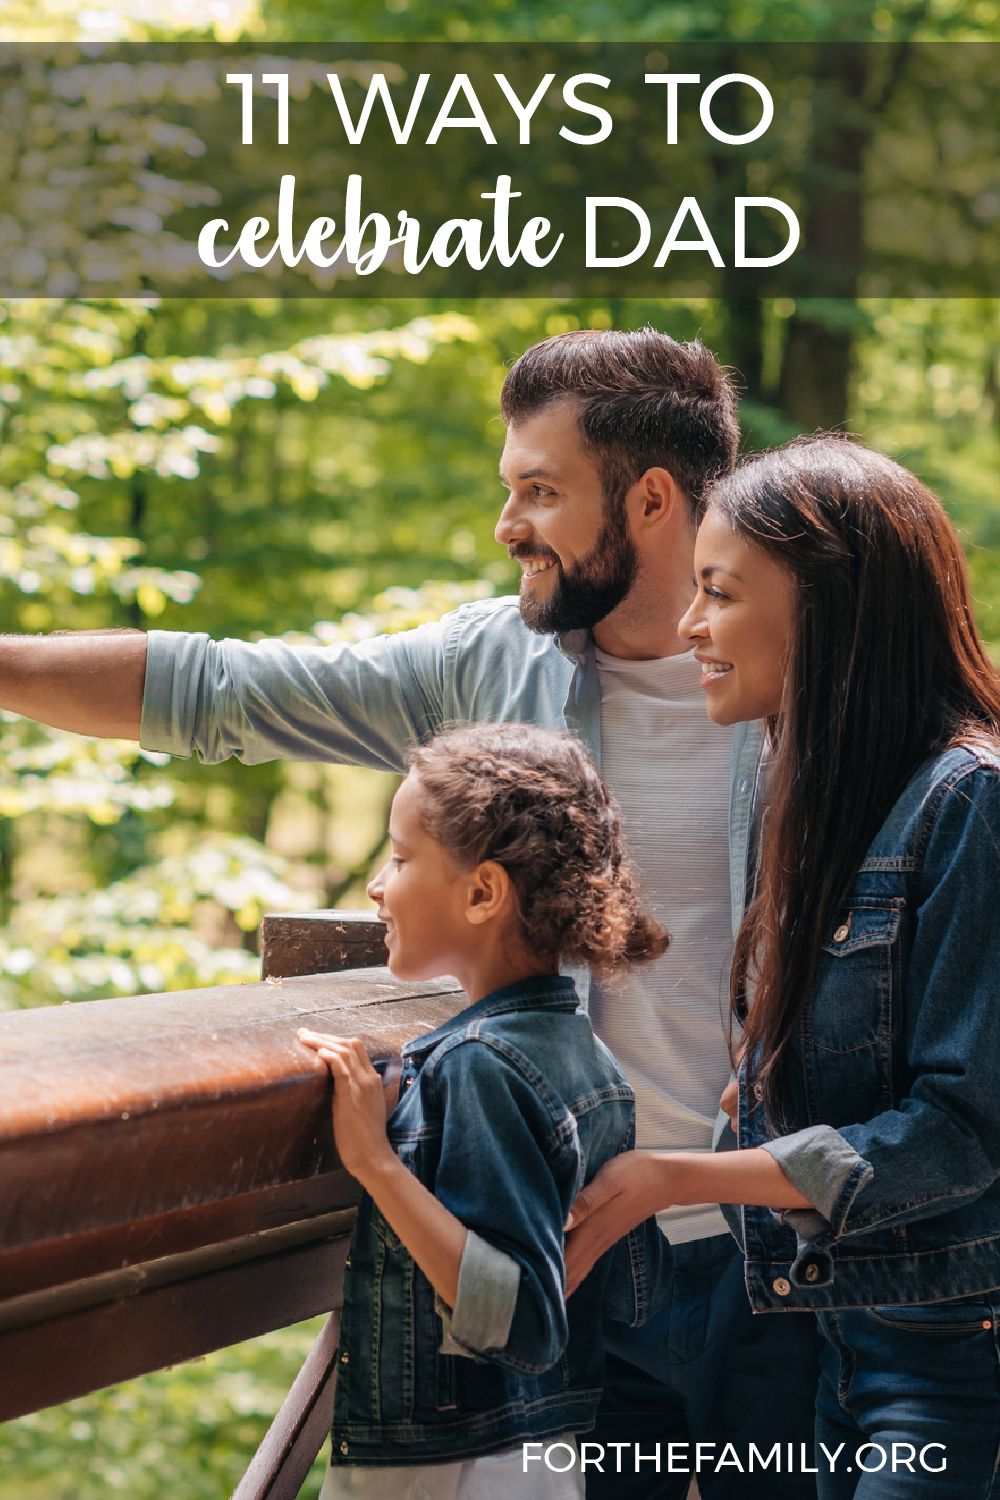 Father's Day is coming and we have some fabulous ideas to make it memorable! My favorite is #6!